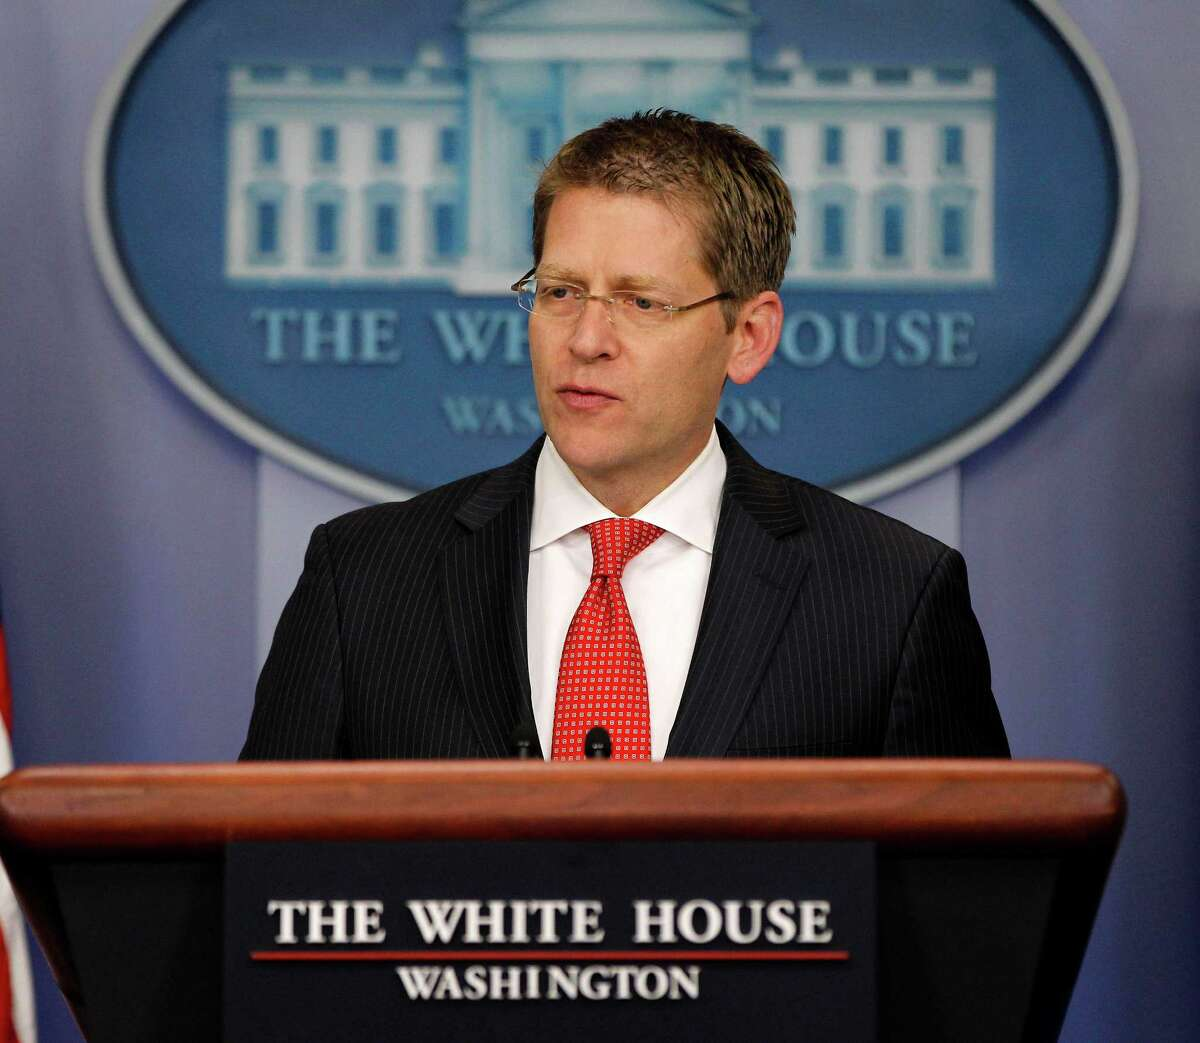 White House Press Secretary Jay Carney speaks during his daily news briefing at the White House in Washington, Thursday, May, 3, 2012. (AP Photo/Pablo Martinez Monsivais)